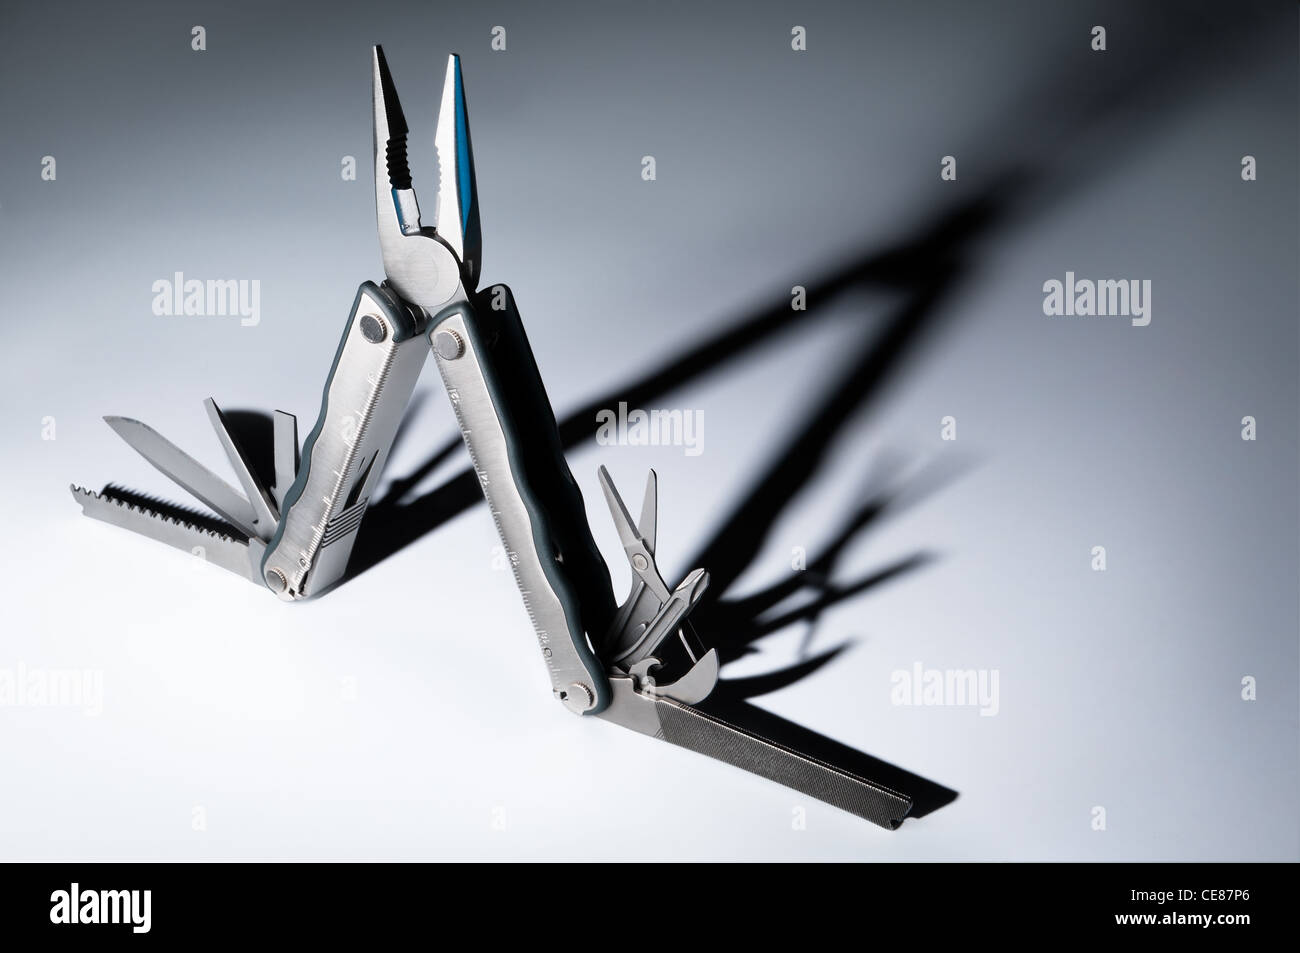 Fully unfolded multitool knife. White foreground, dark background, strong shadow. - Stock Image